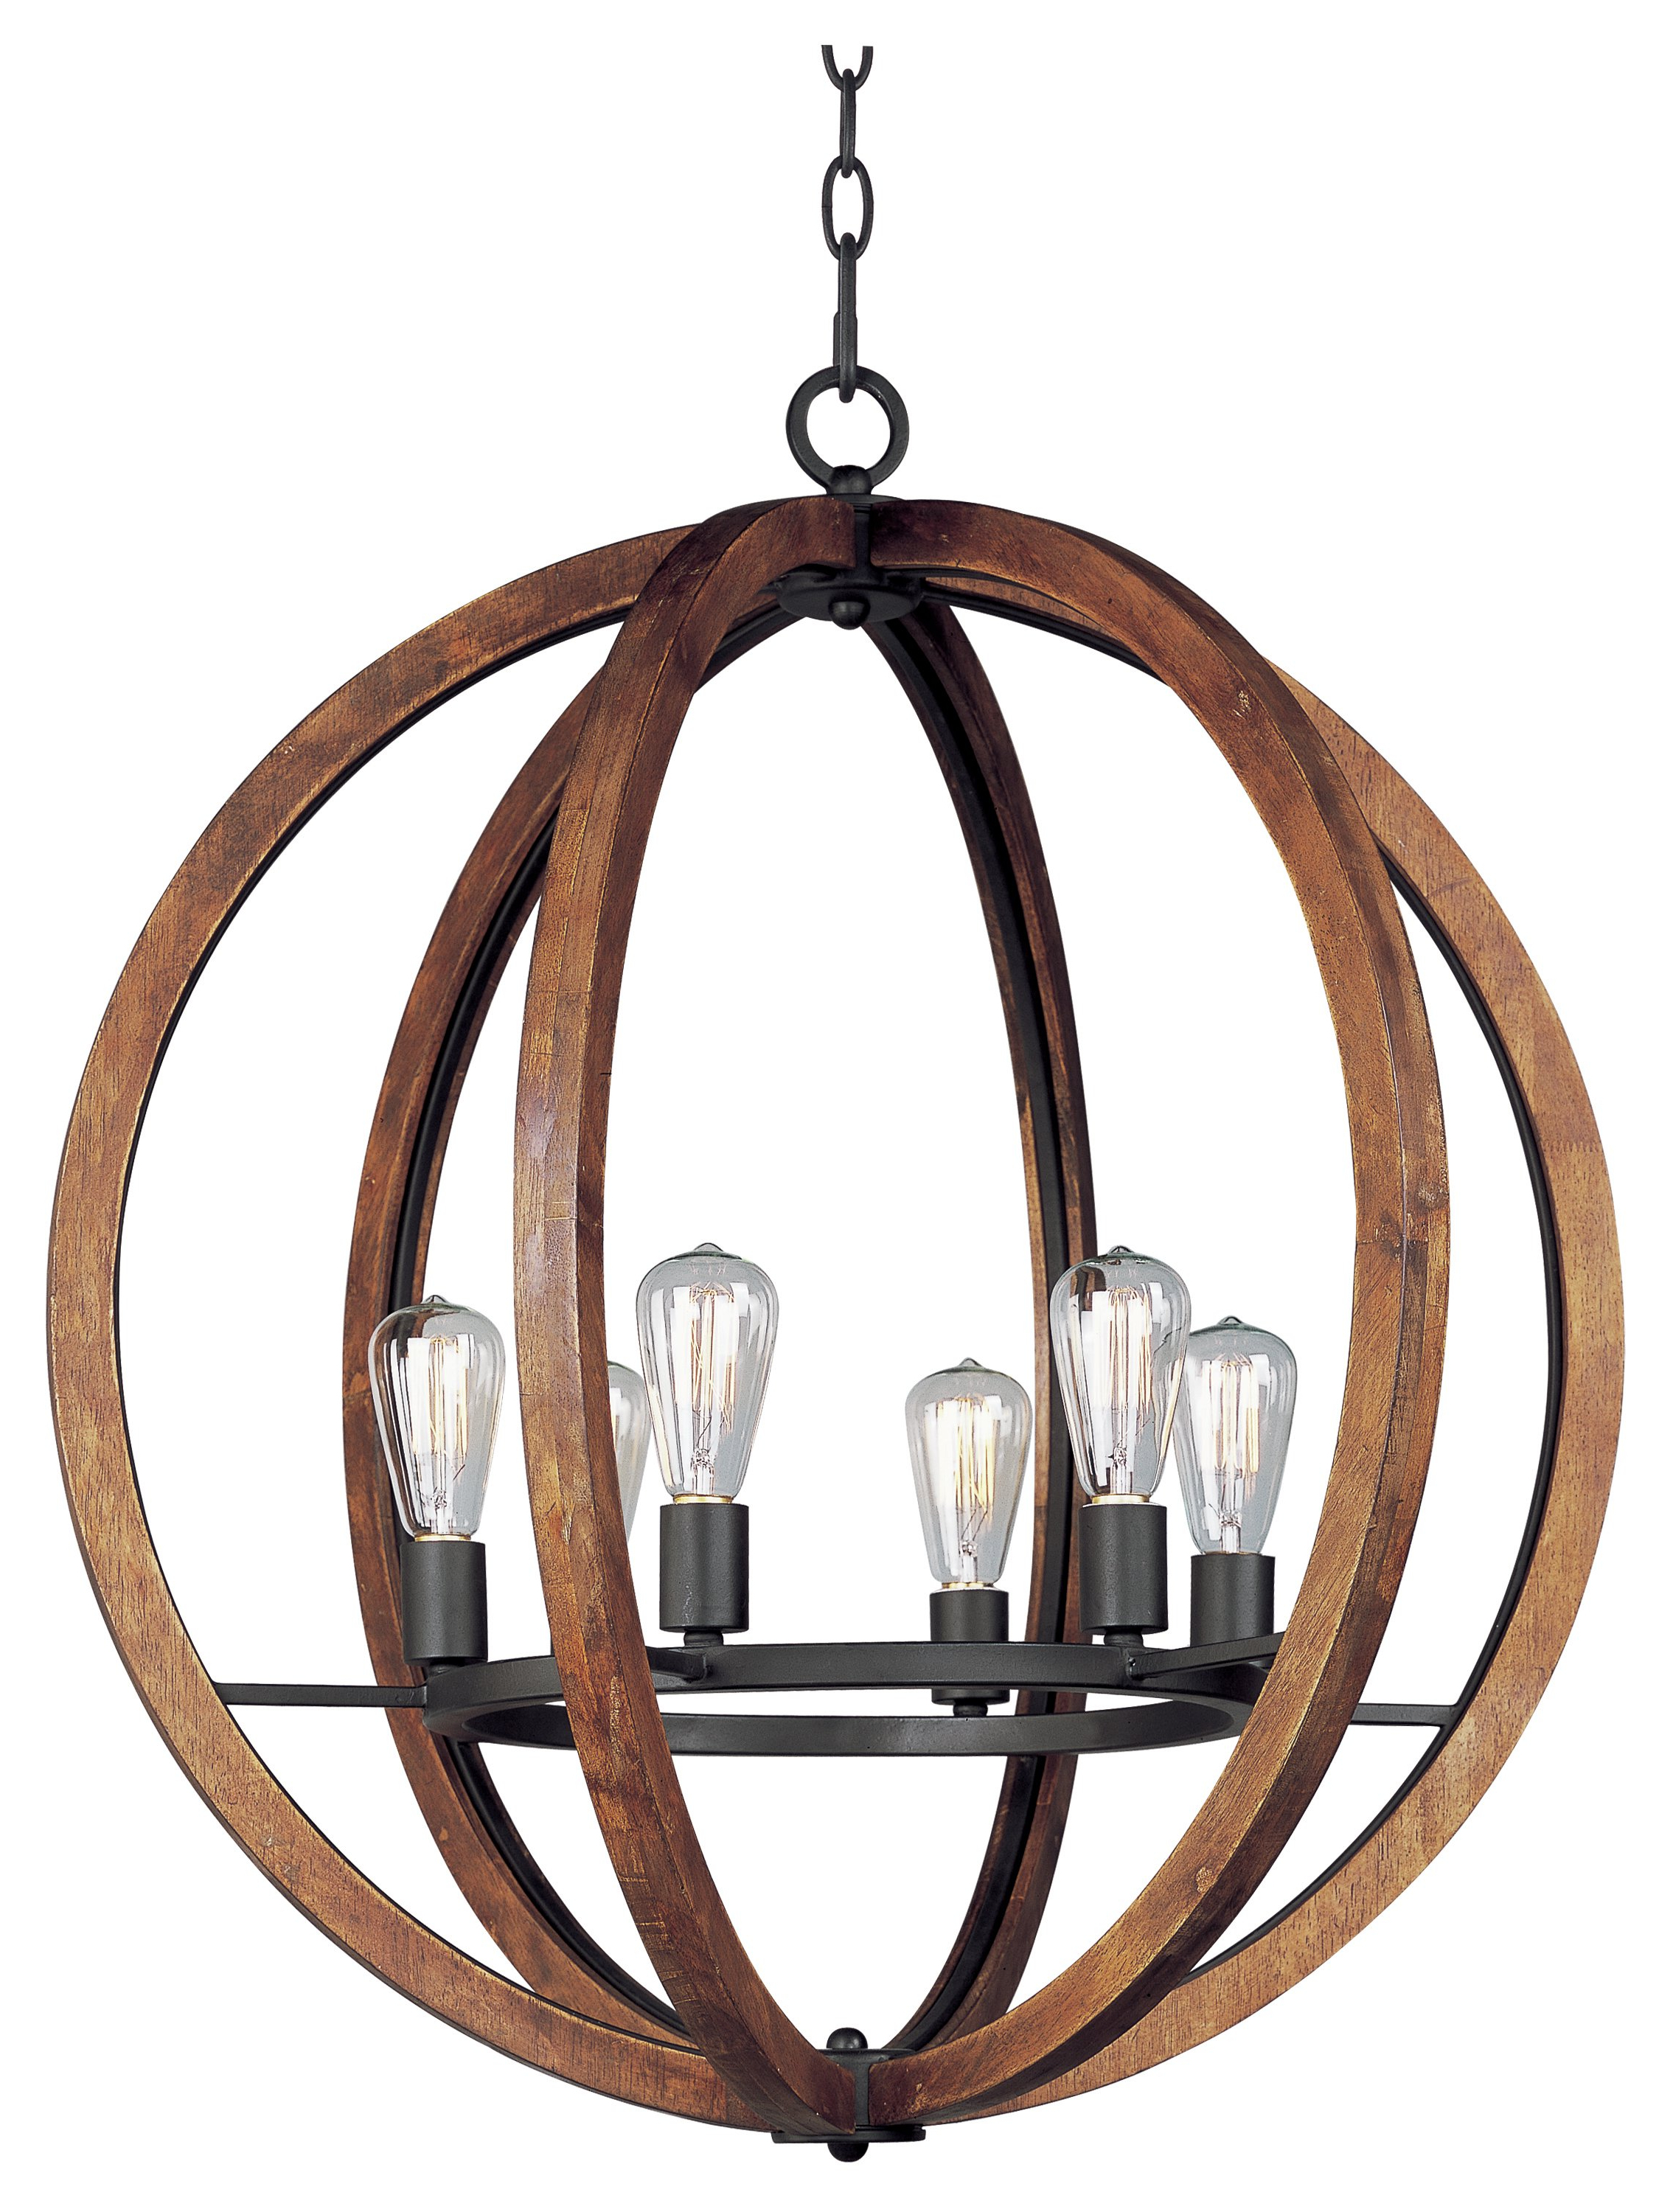 Orly 6 Light Globe Chandelier Throughout Trendy Joon 6 Light Globe Chandeliers (View 16 of 20)